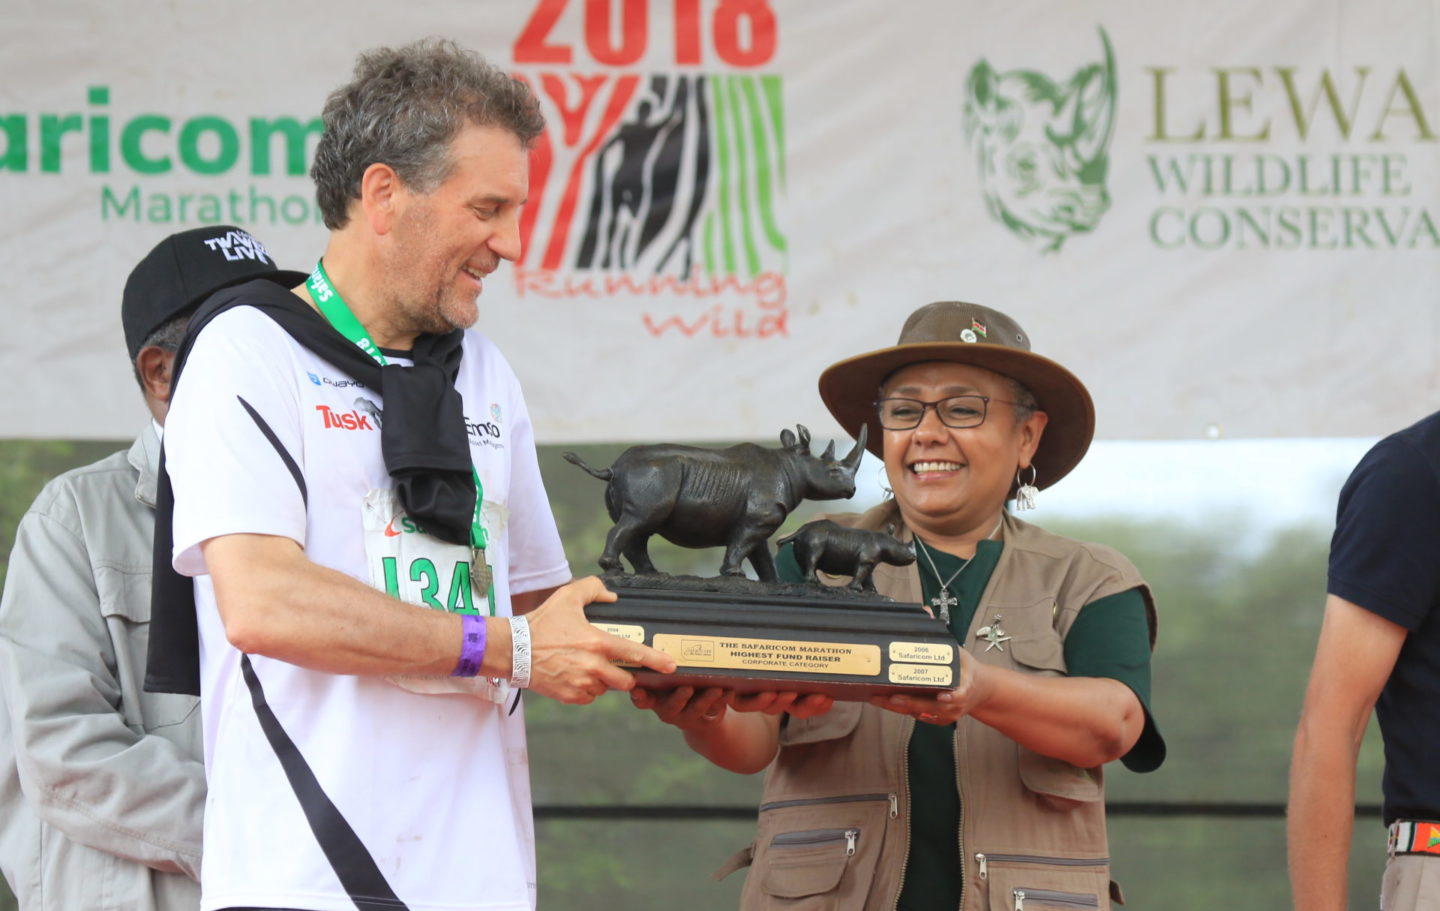 Mark Franklin of Emso is presented the fundraising trophy by Kenya's First Lady